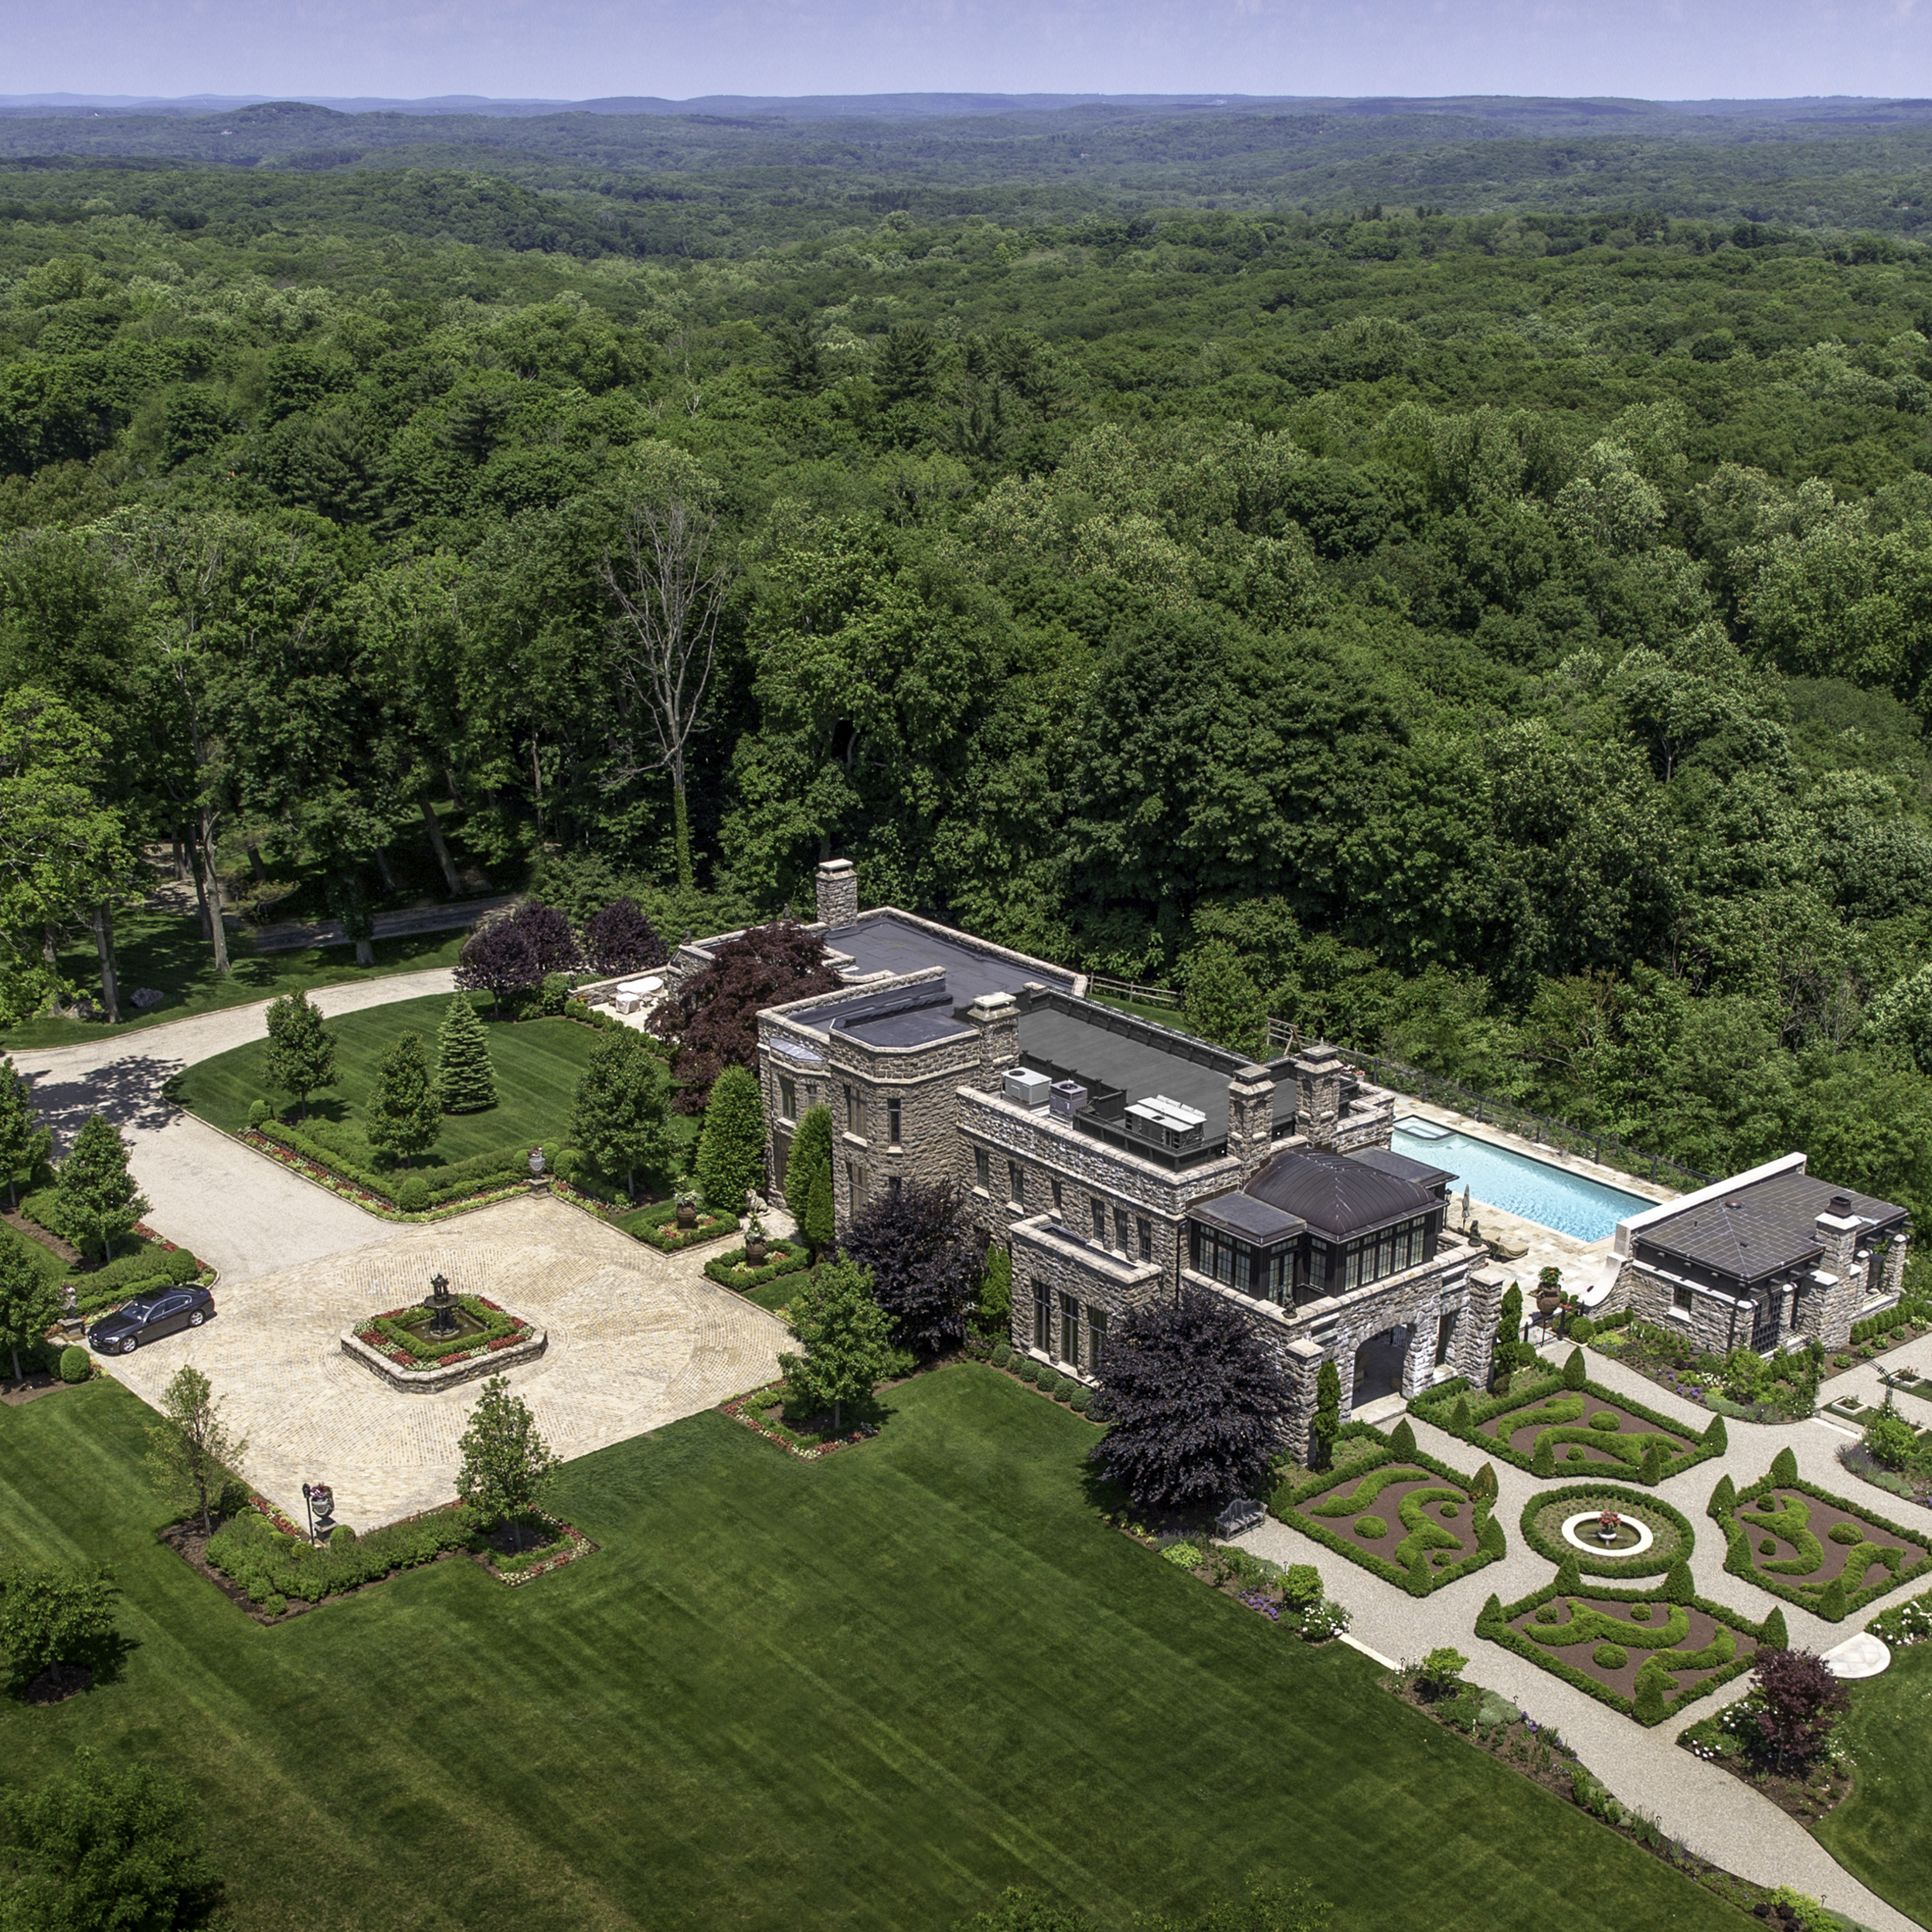 Armonk-Soundview-Aerial-Good Ones-9.jpg